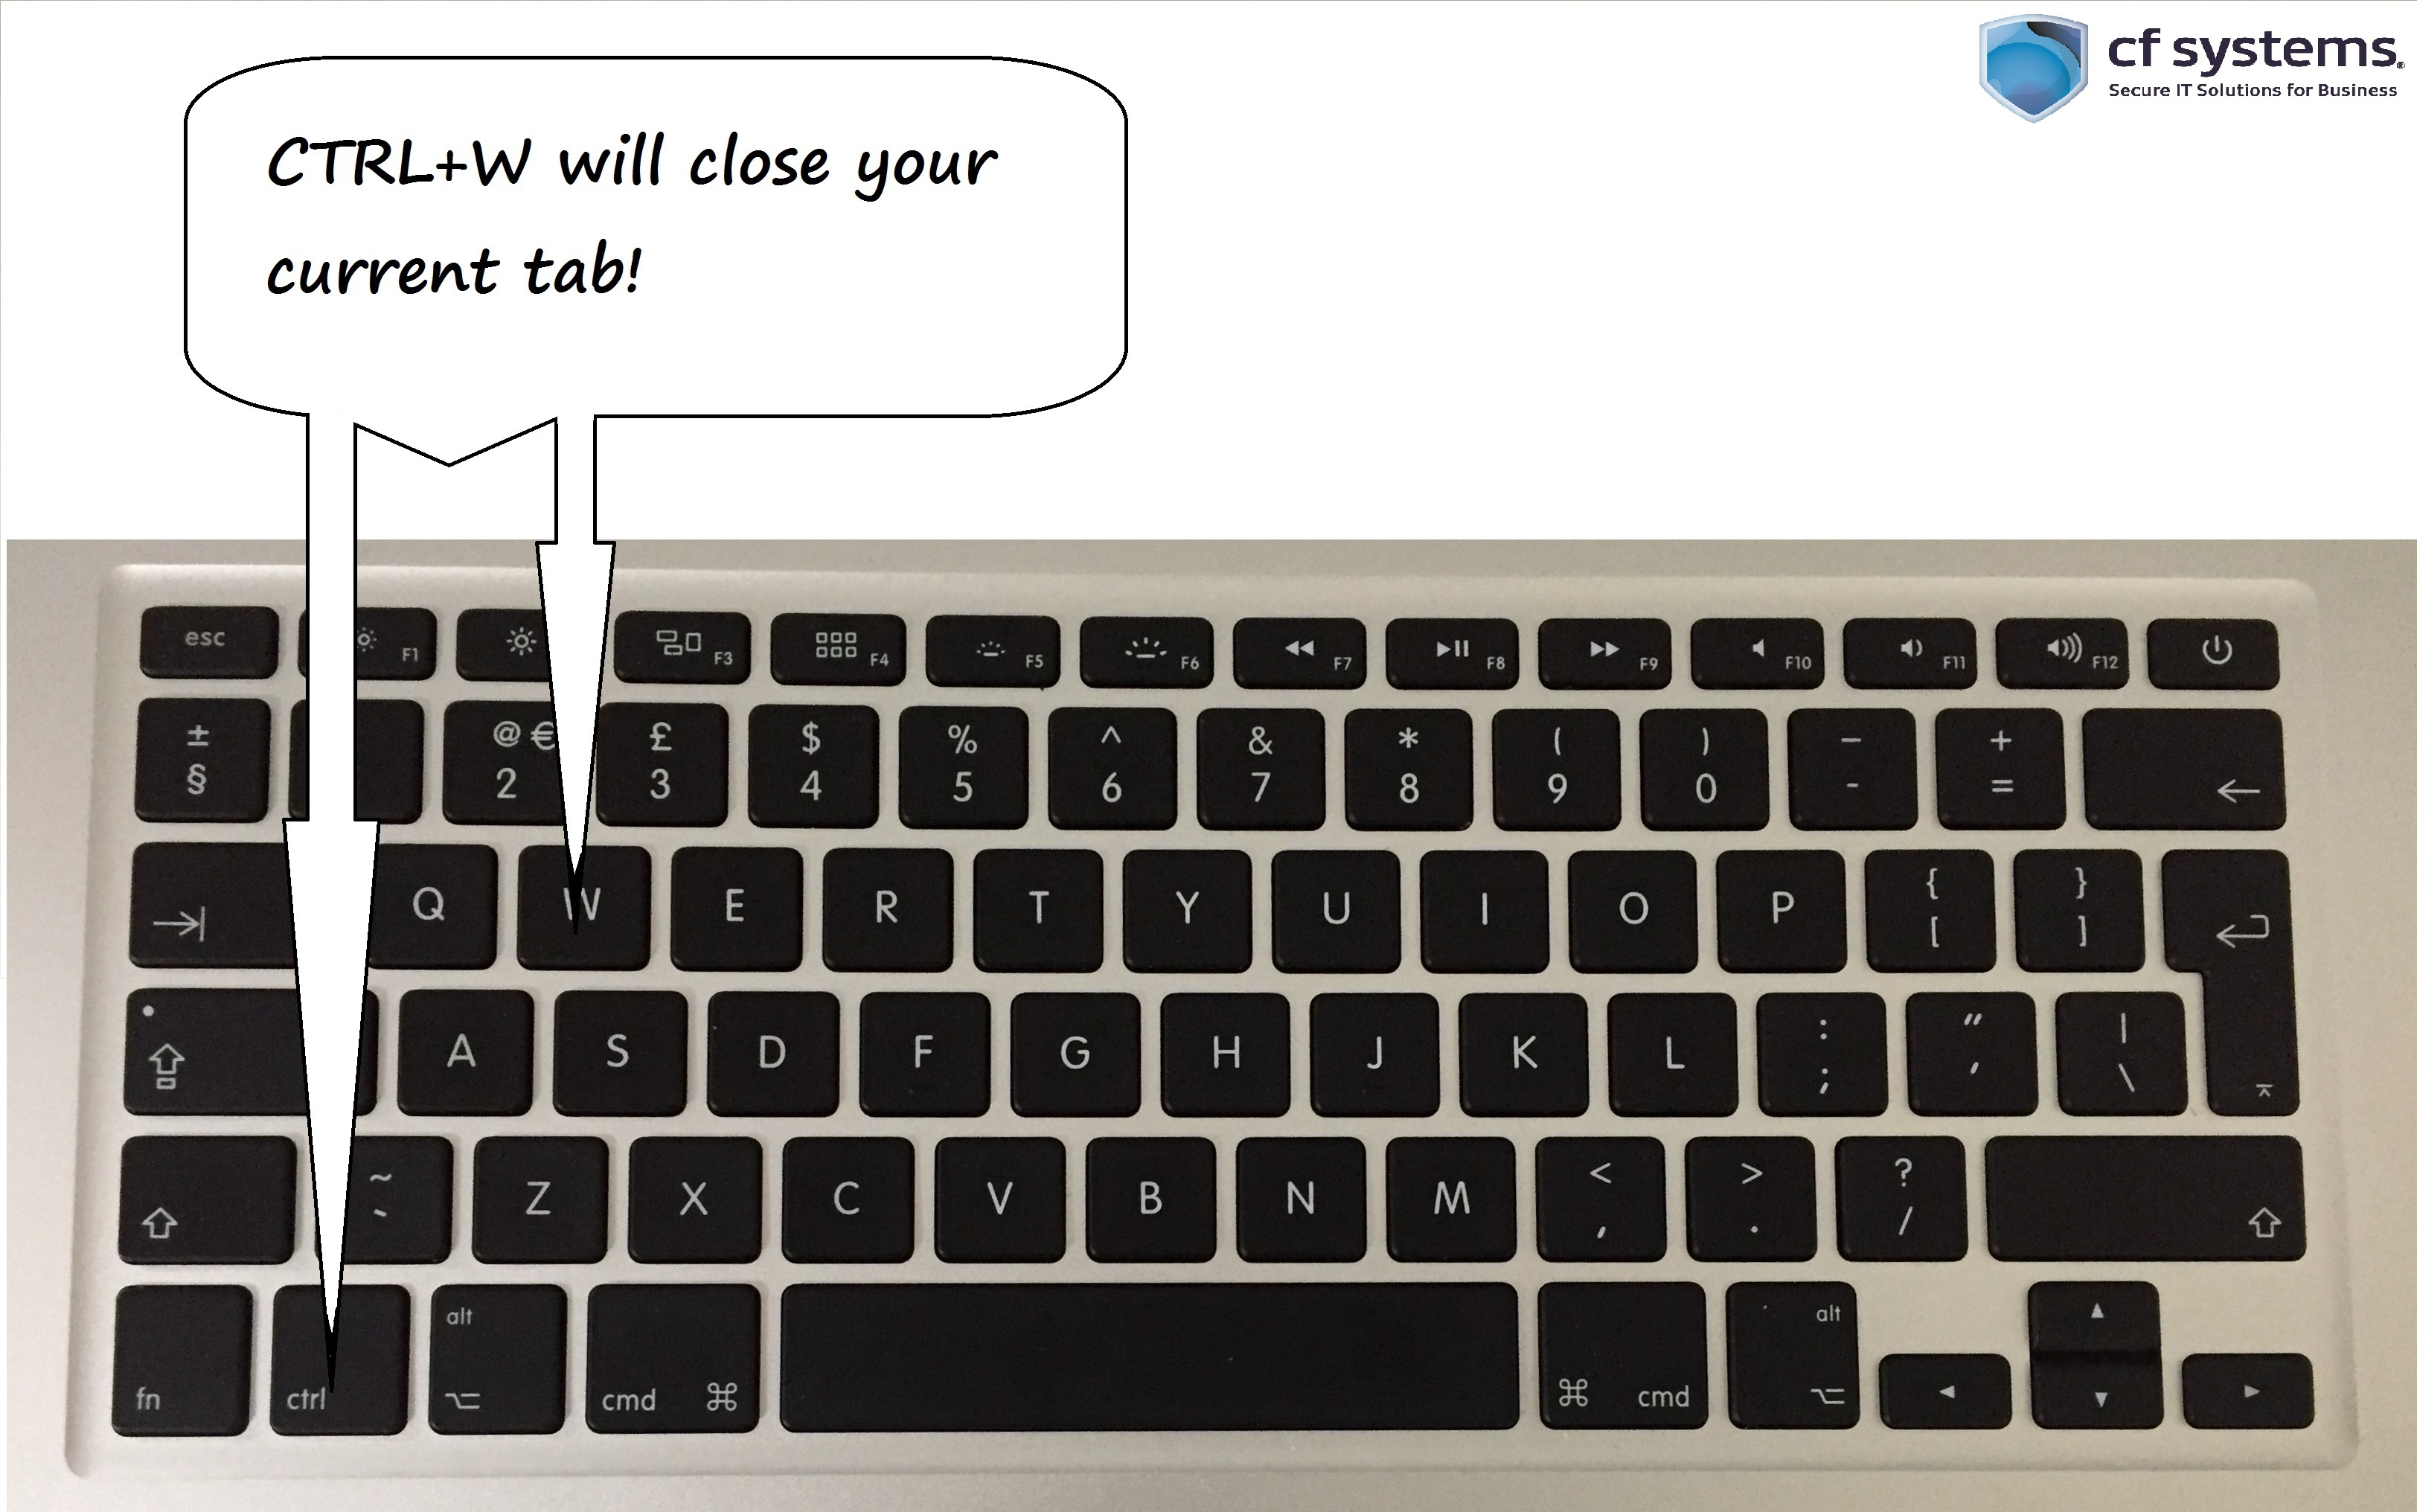 Keyboard shortcuts! Close a tab without touching your mouse!